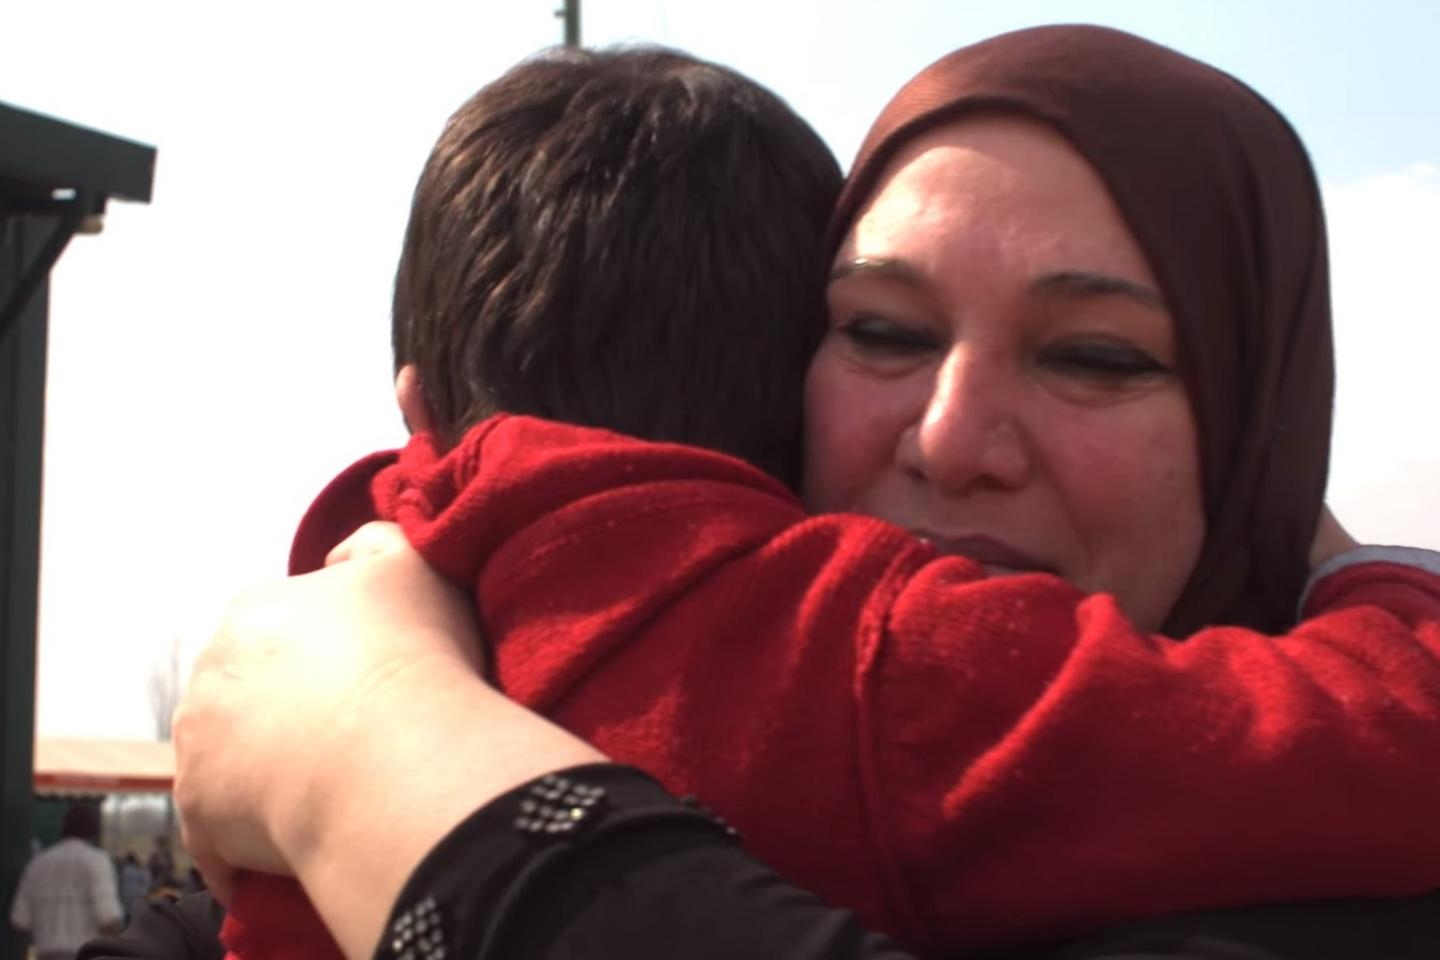 Syrian mother Hanna hugs her son Ahmed at their temporary home in Greece.